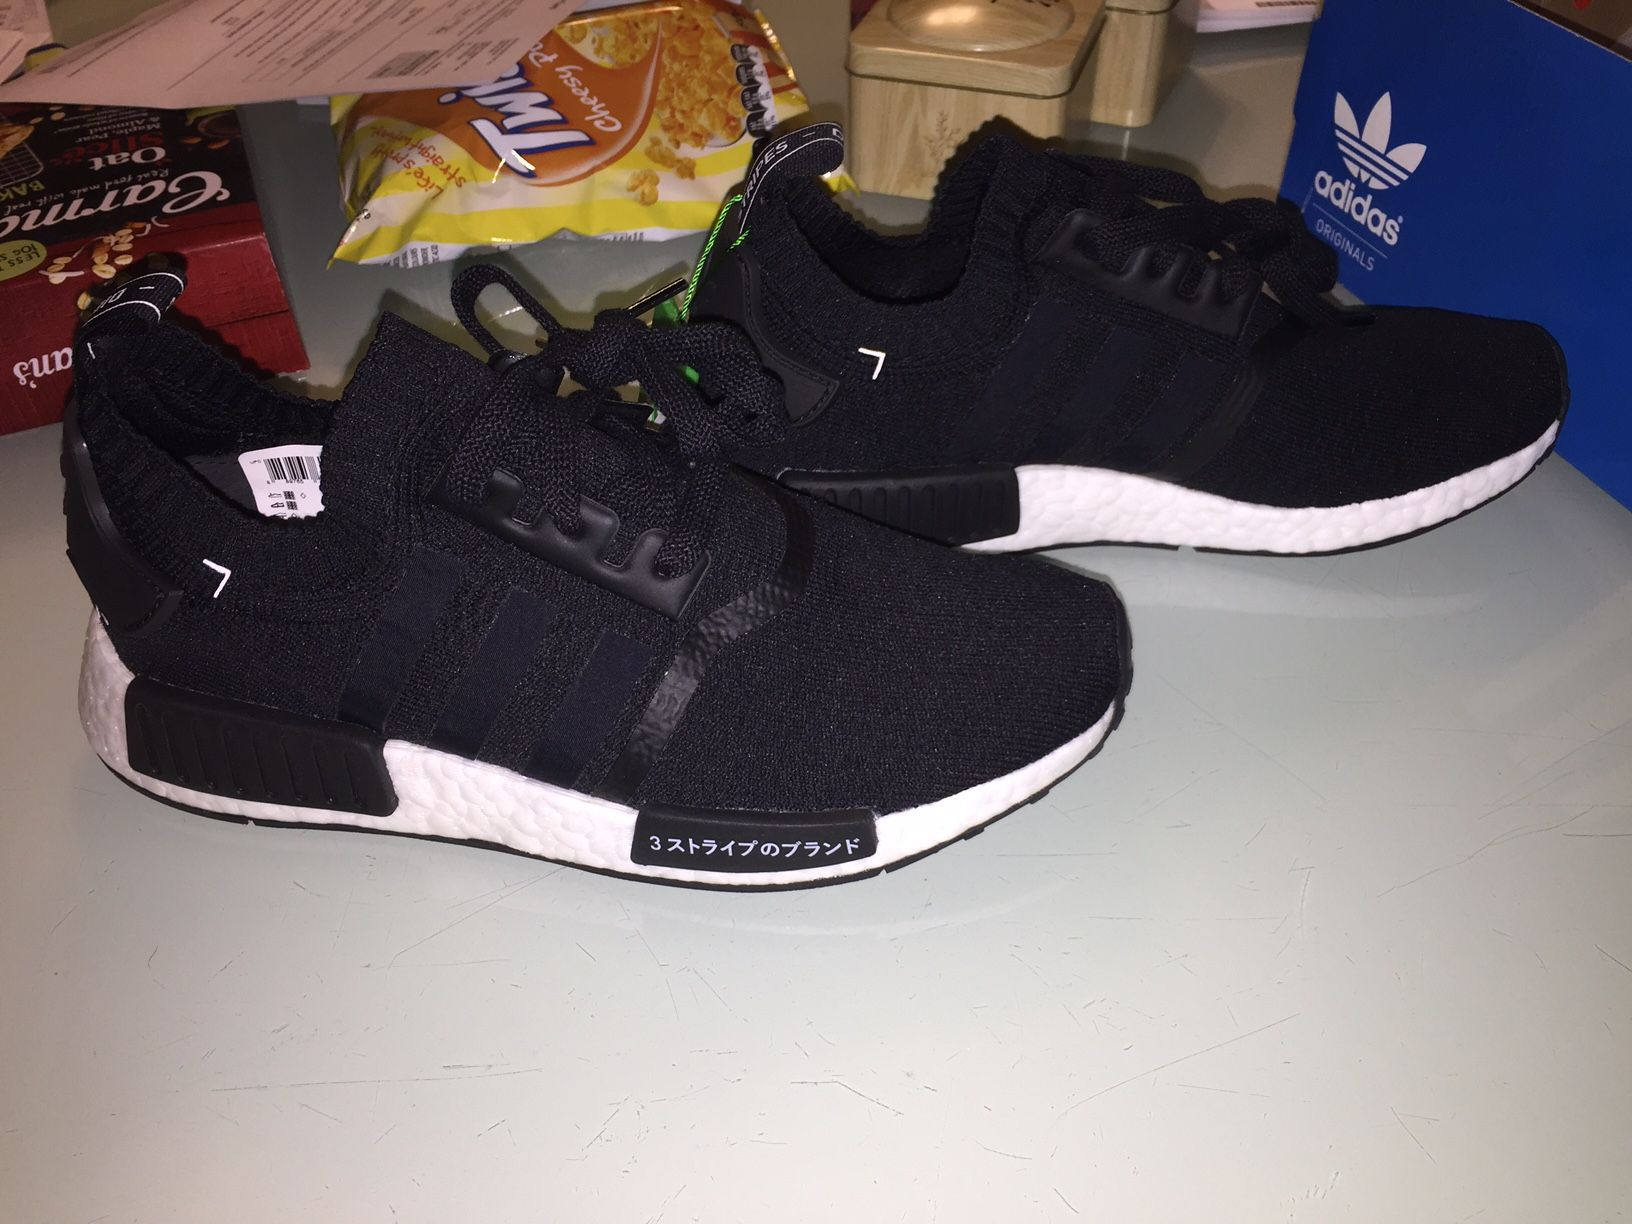 Legit Check] Quick Adidas NMD Japan Blacks please! :) | Nike